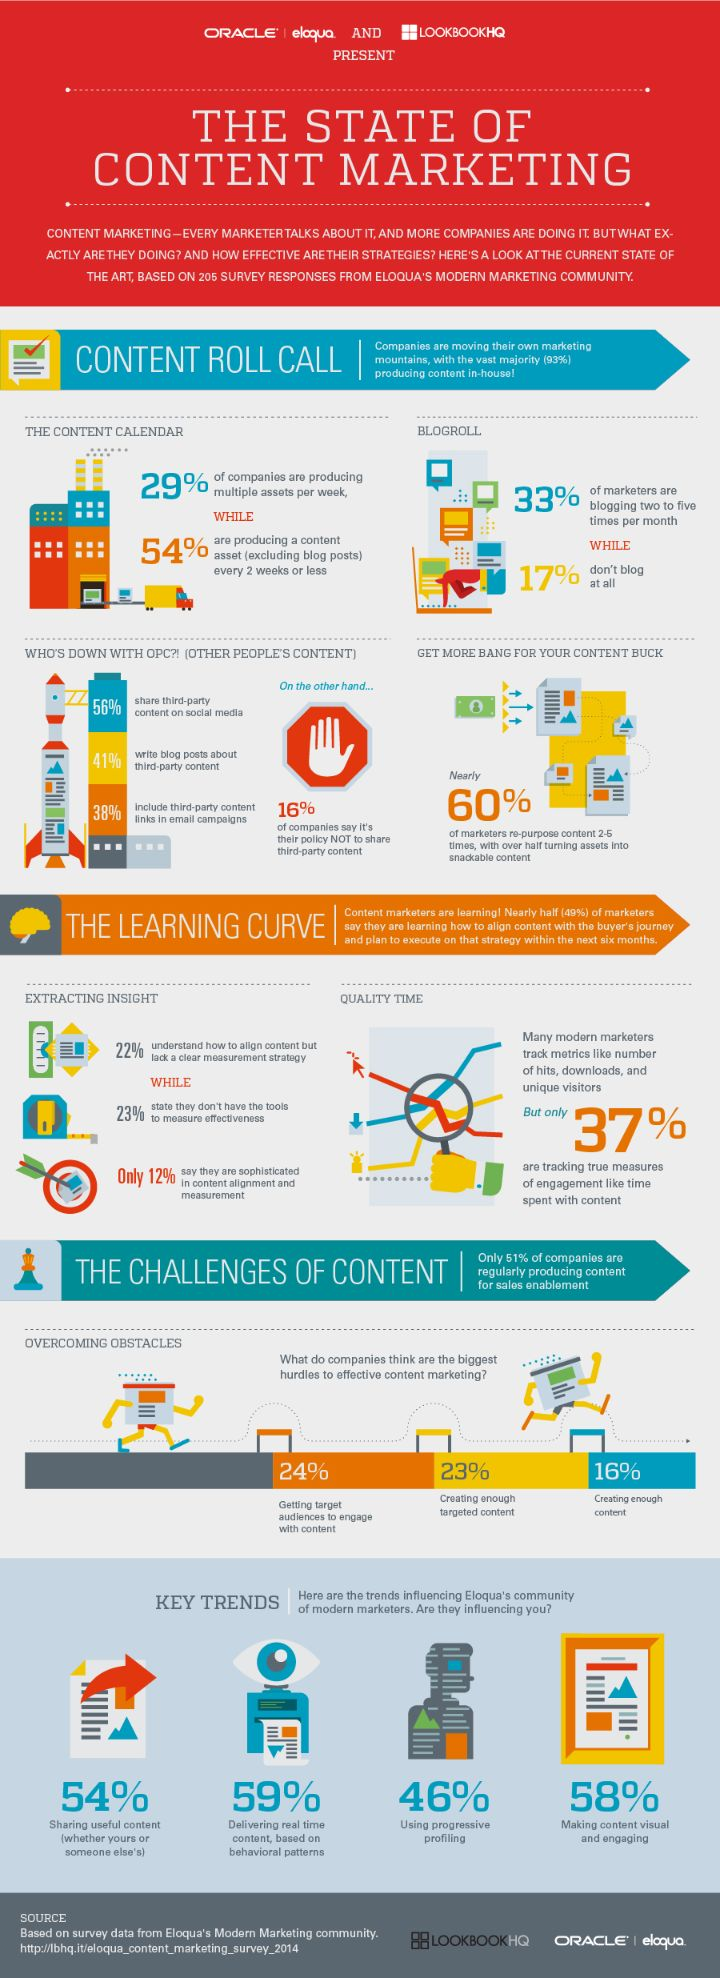 How Much Should I Charge for Social Media Content Creation? The State of Content Marketing (Infographic)